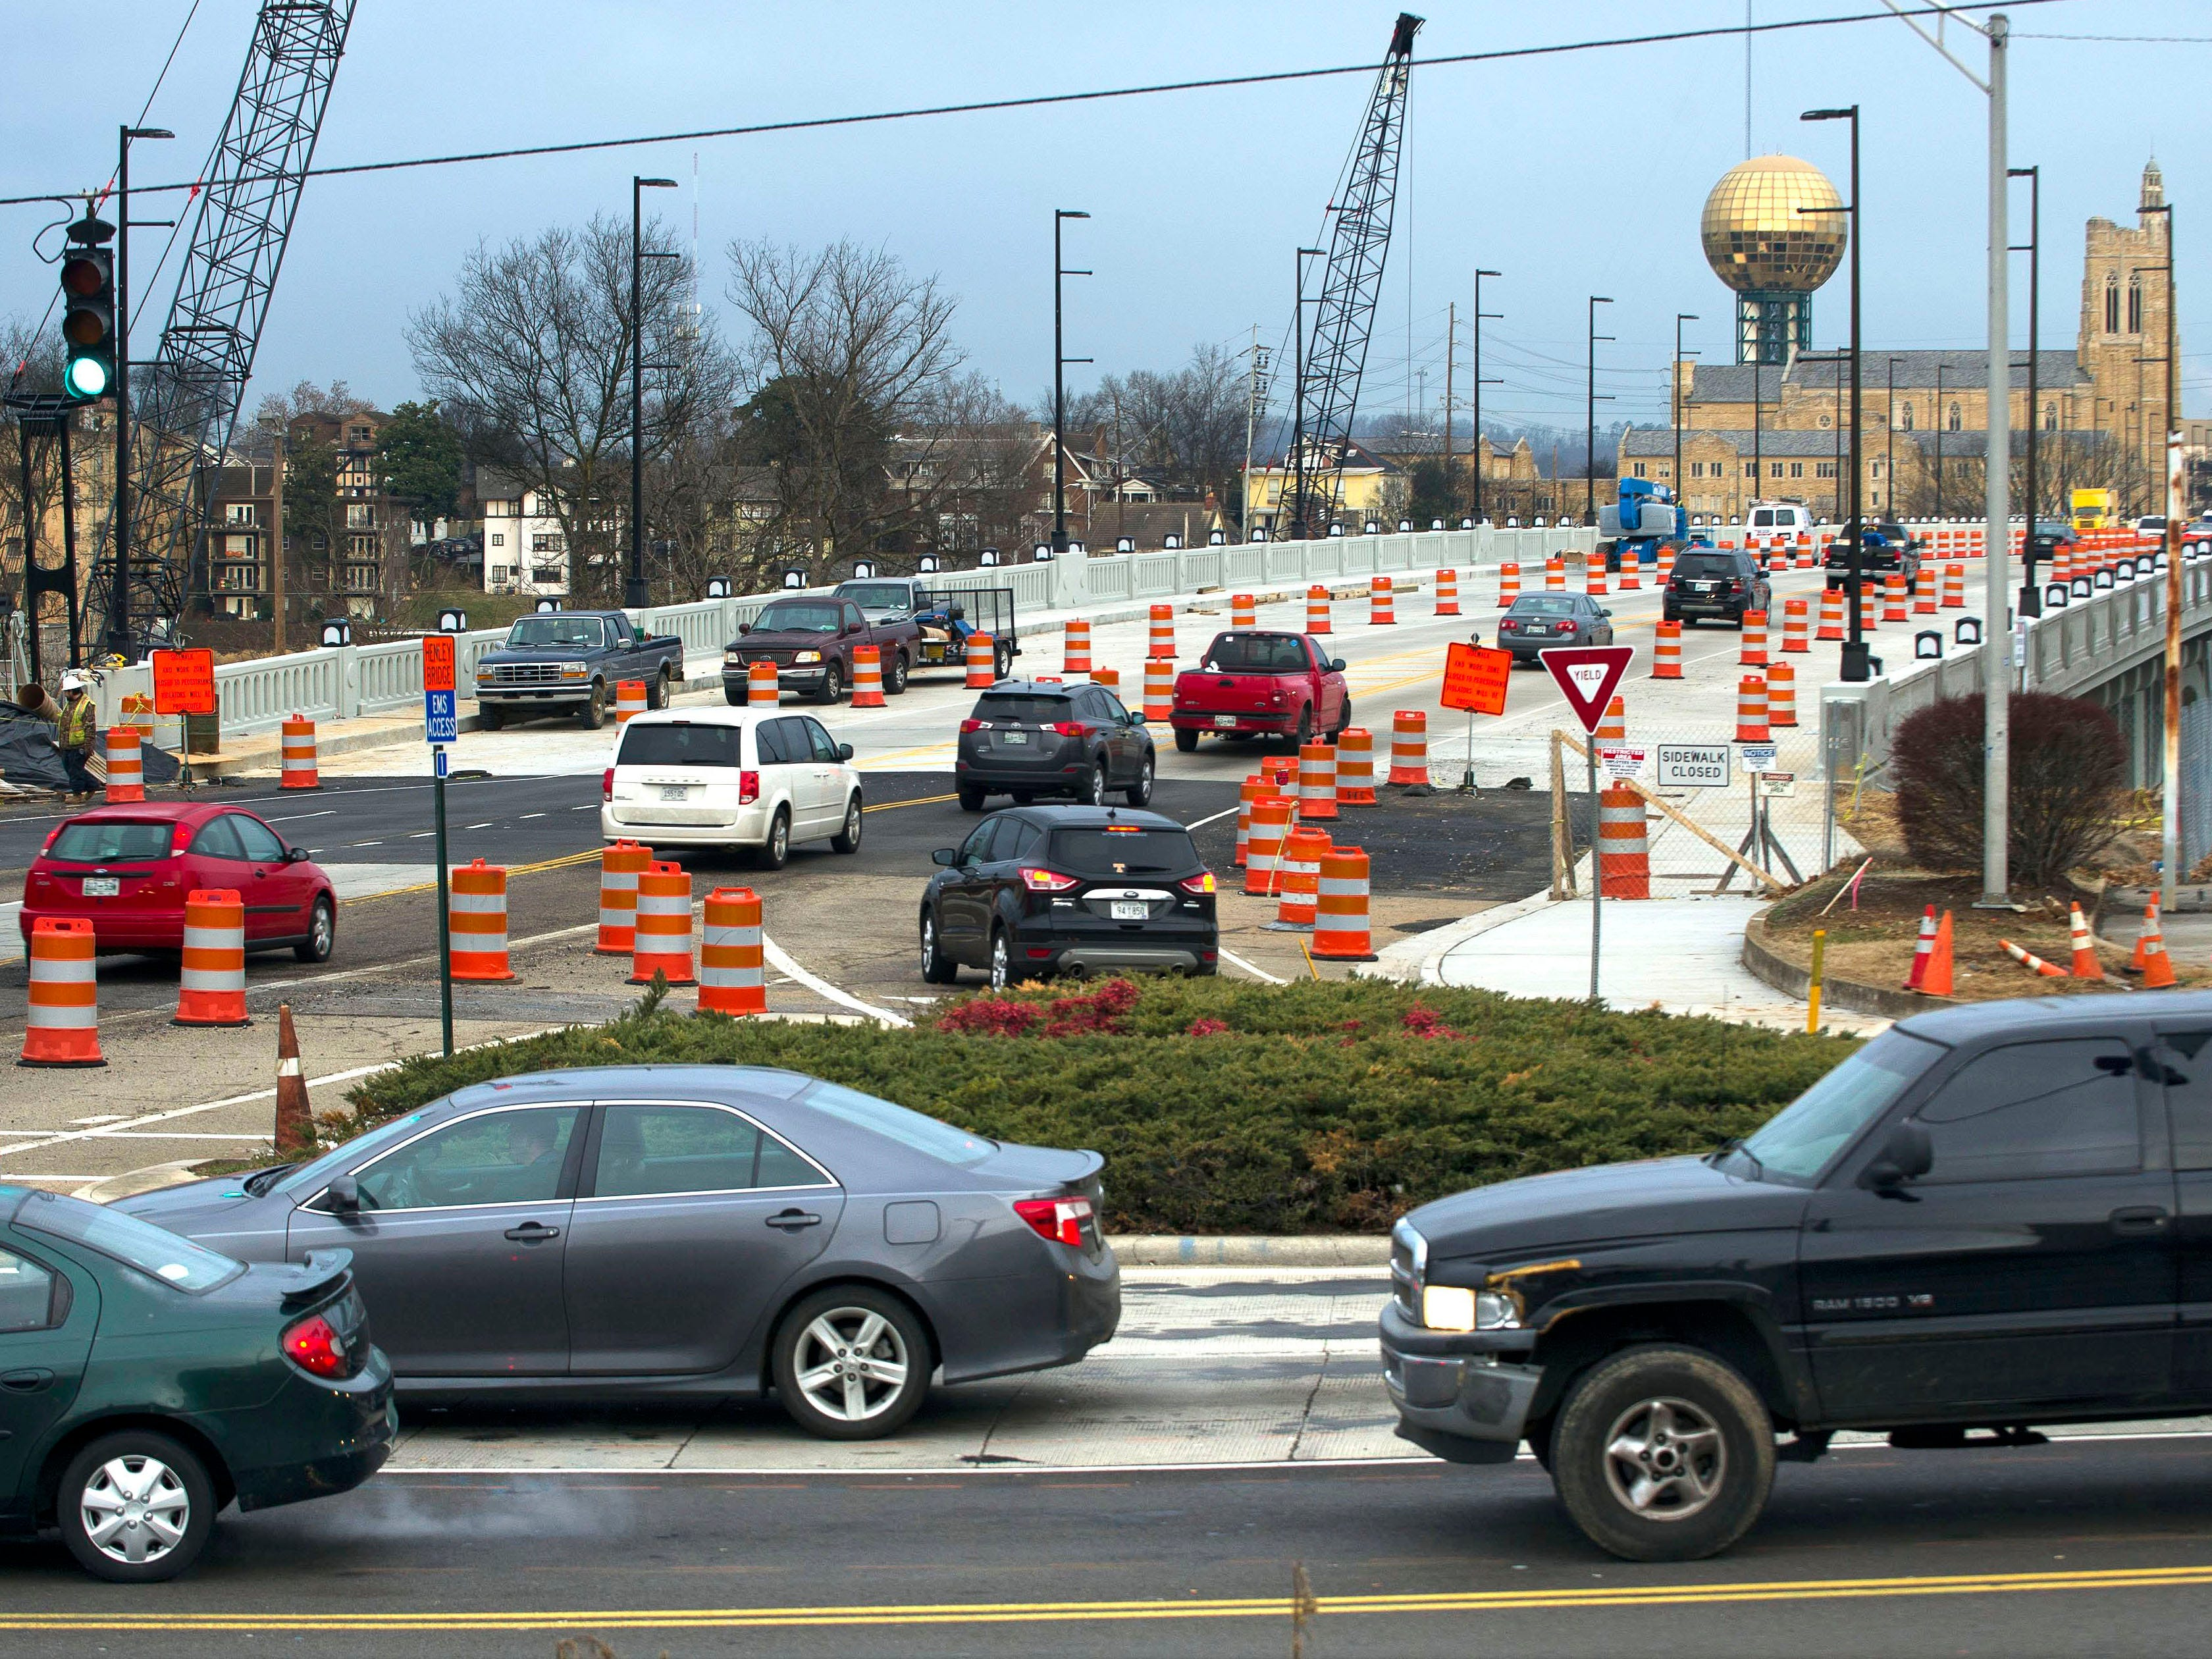 Traffics is seen at the intersection of Chapman Highway and Blount Avenue earlier this month at the Henley bridge in South Knoxville. Tennessee Department of Transportation officials expect four lanes of the Henley bridge to reopen to traffic before the Feb. 28 deadline.